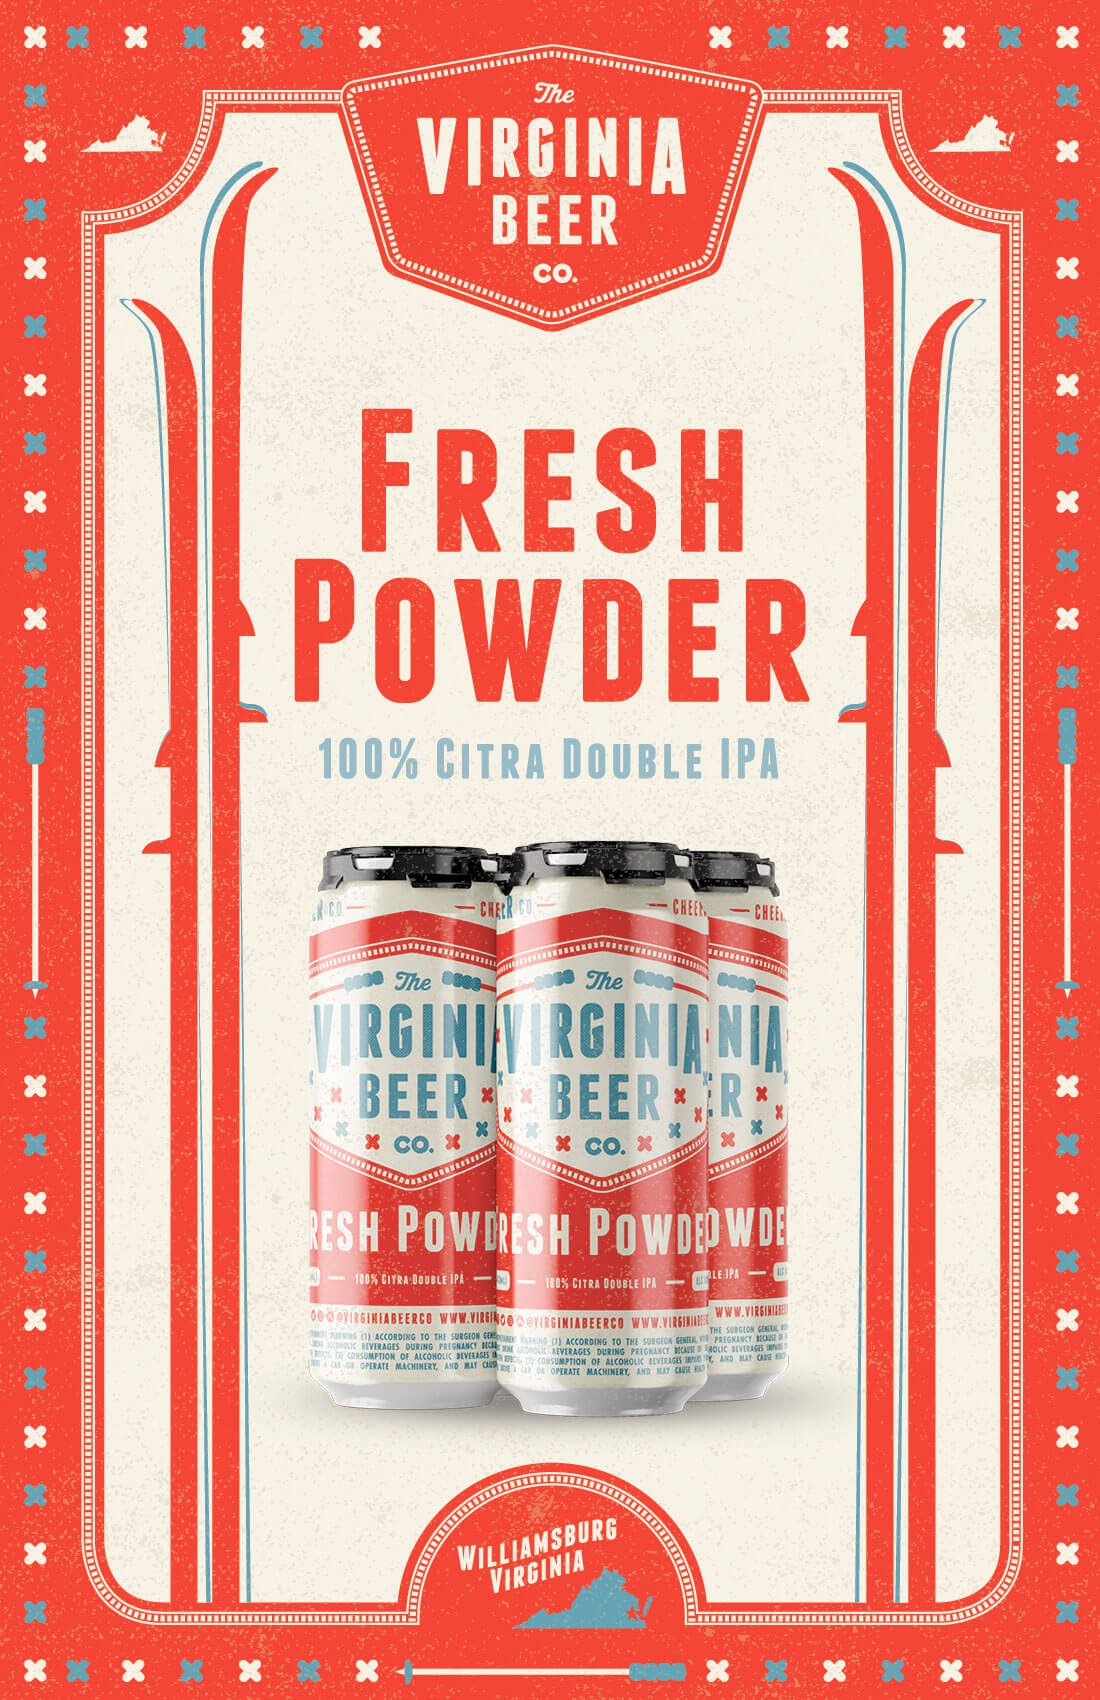 Poster art promoting the return of Fresh Powder by The Virginia Beer Company